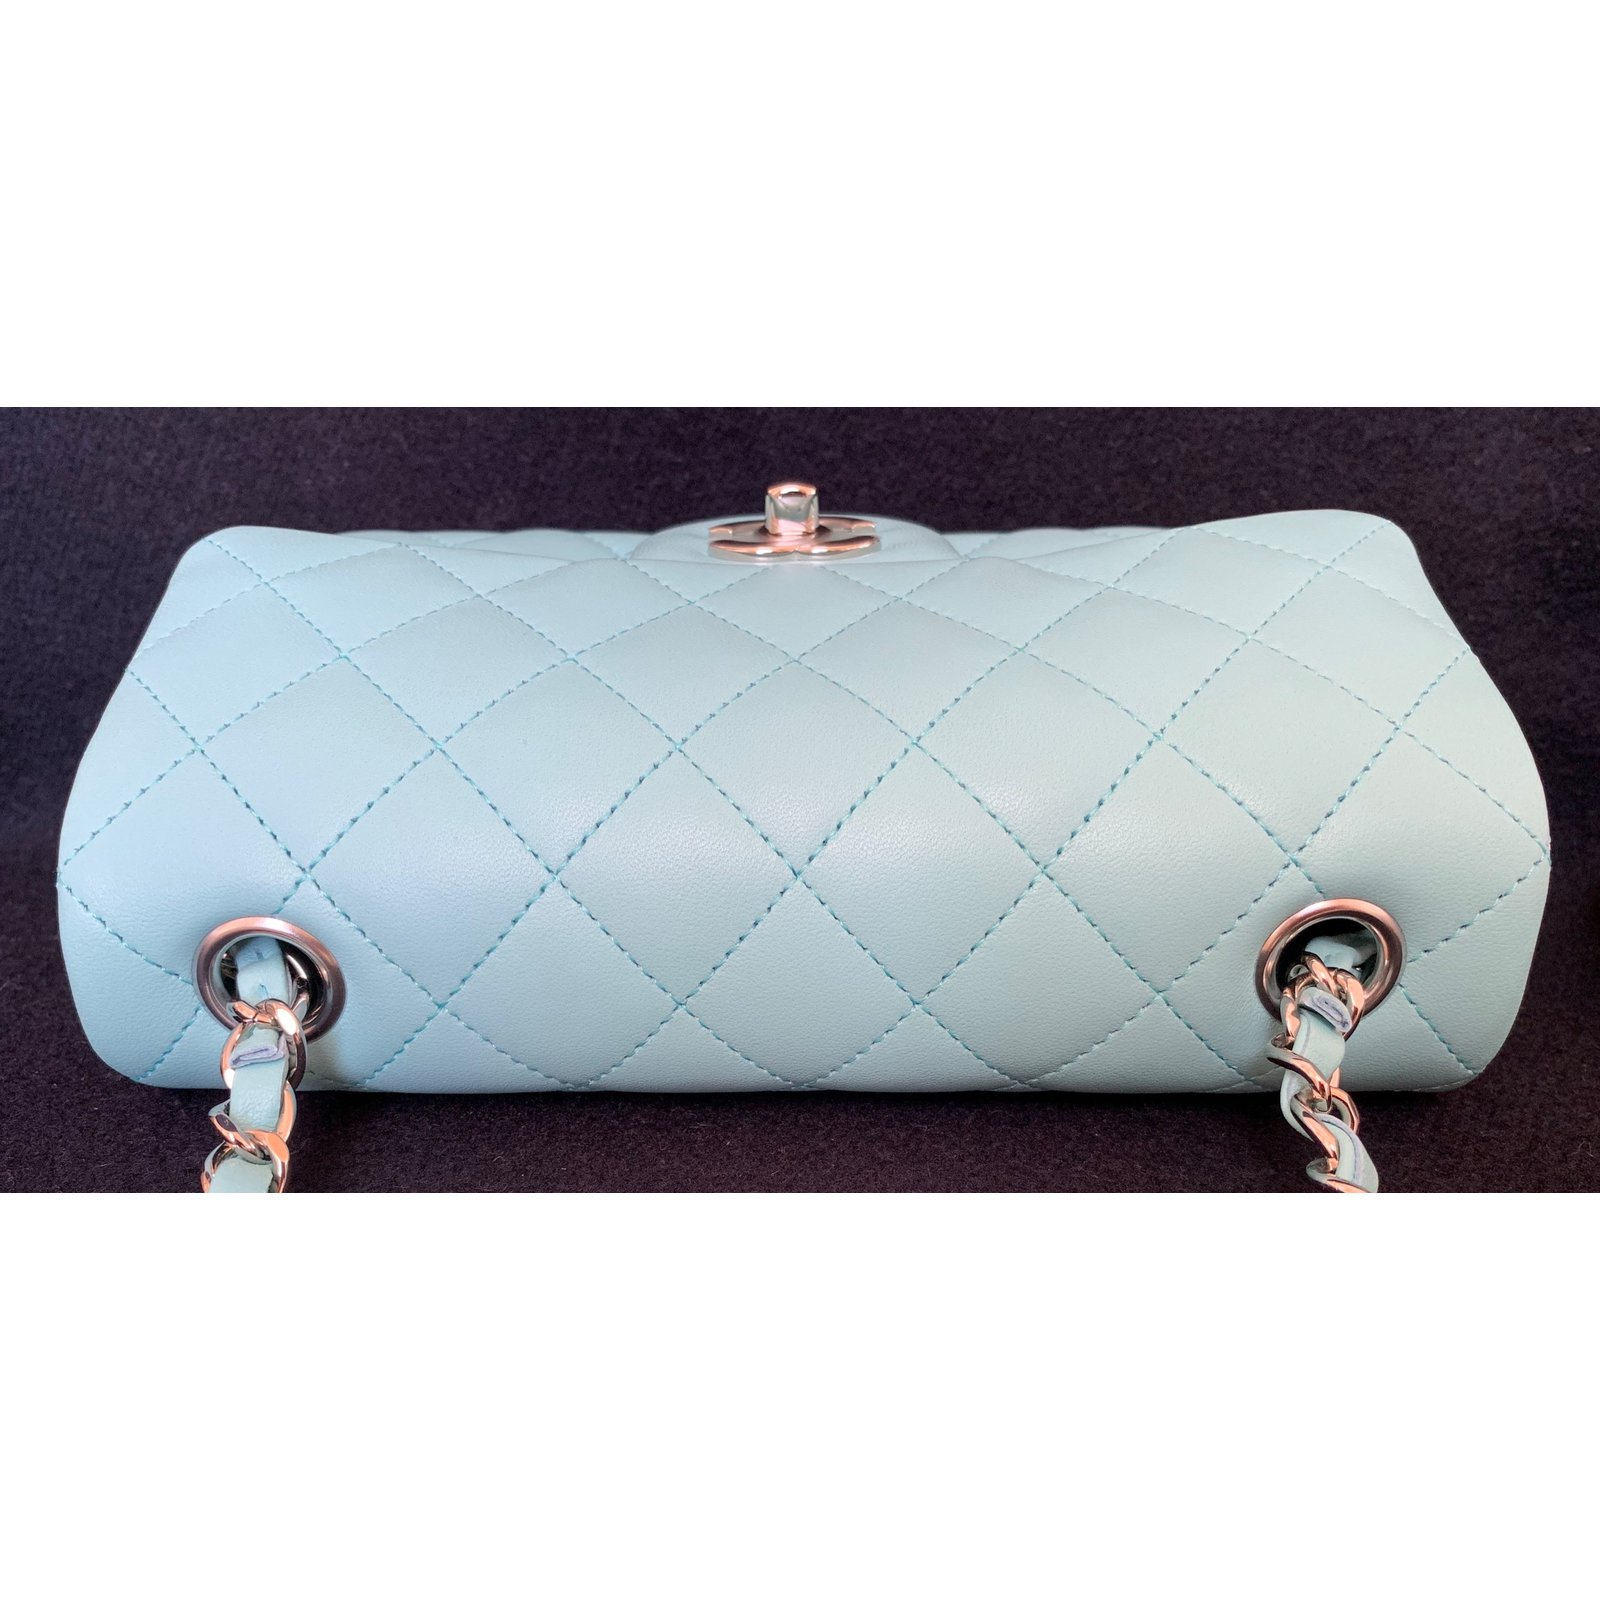 41a3a2a11d95 Chanel Light Blue Classic Quilted Lambskin Mini Flap with Silver Chain  Handbags Leather Light blue ref.92355 - Joli Closet